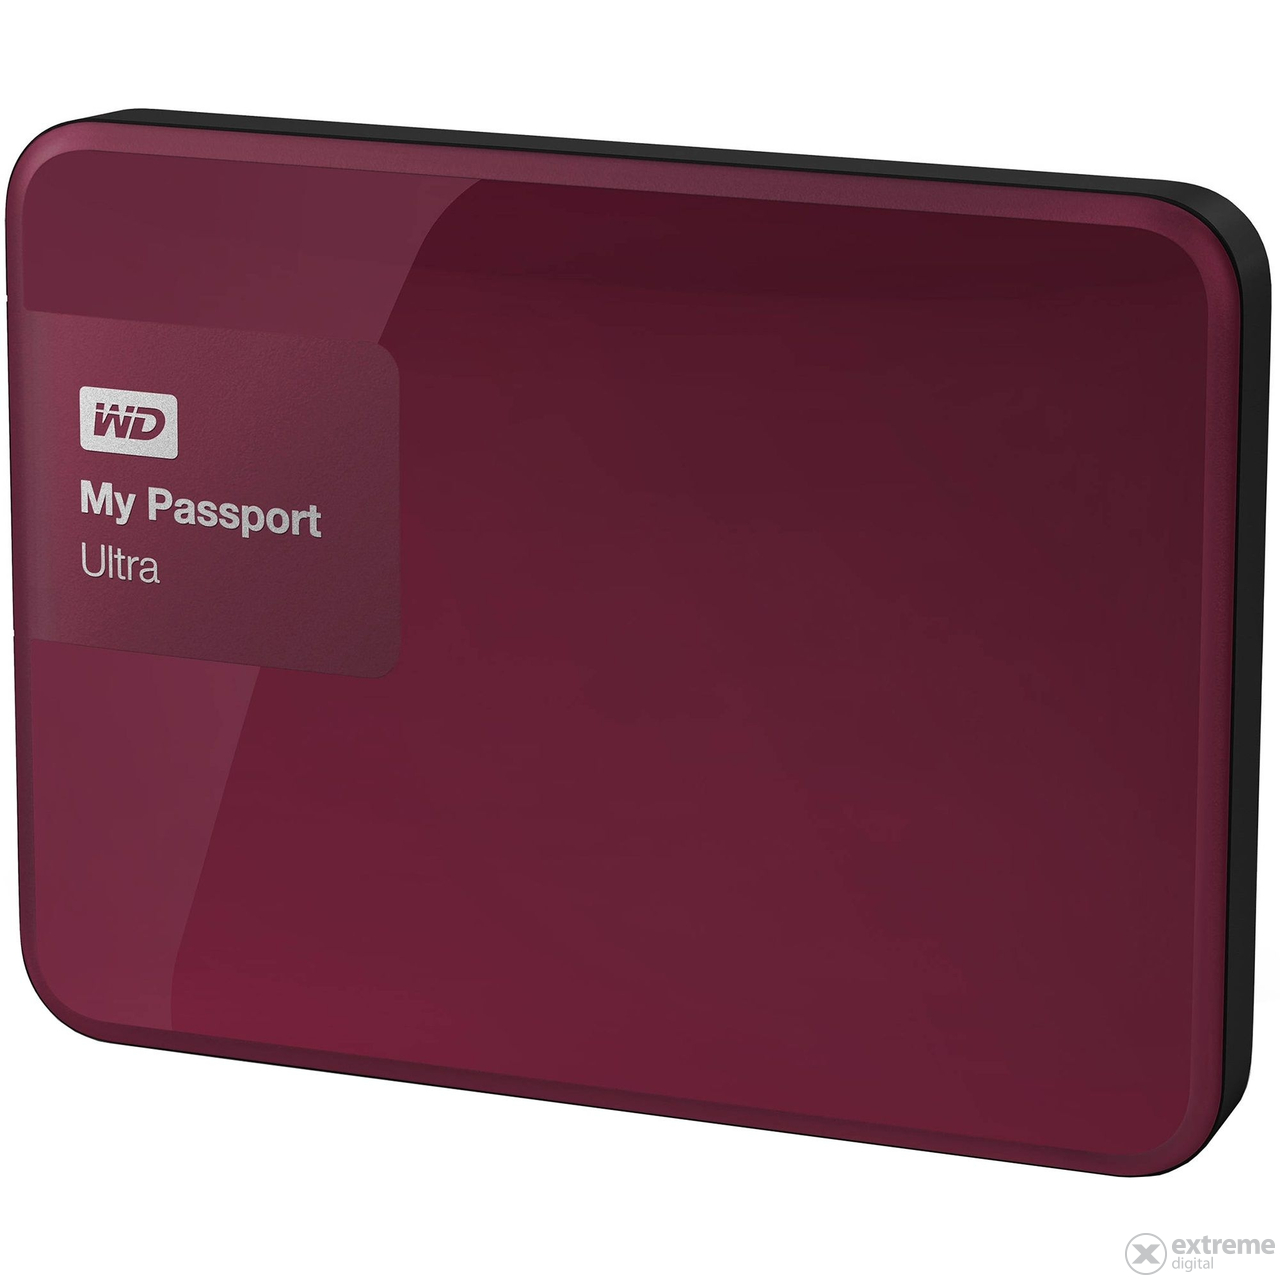 wd-my-passport-ultra-1tb-2-5-kulso_497ba5cb.jpg